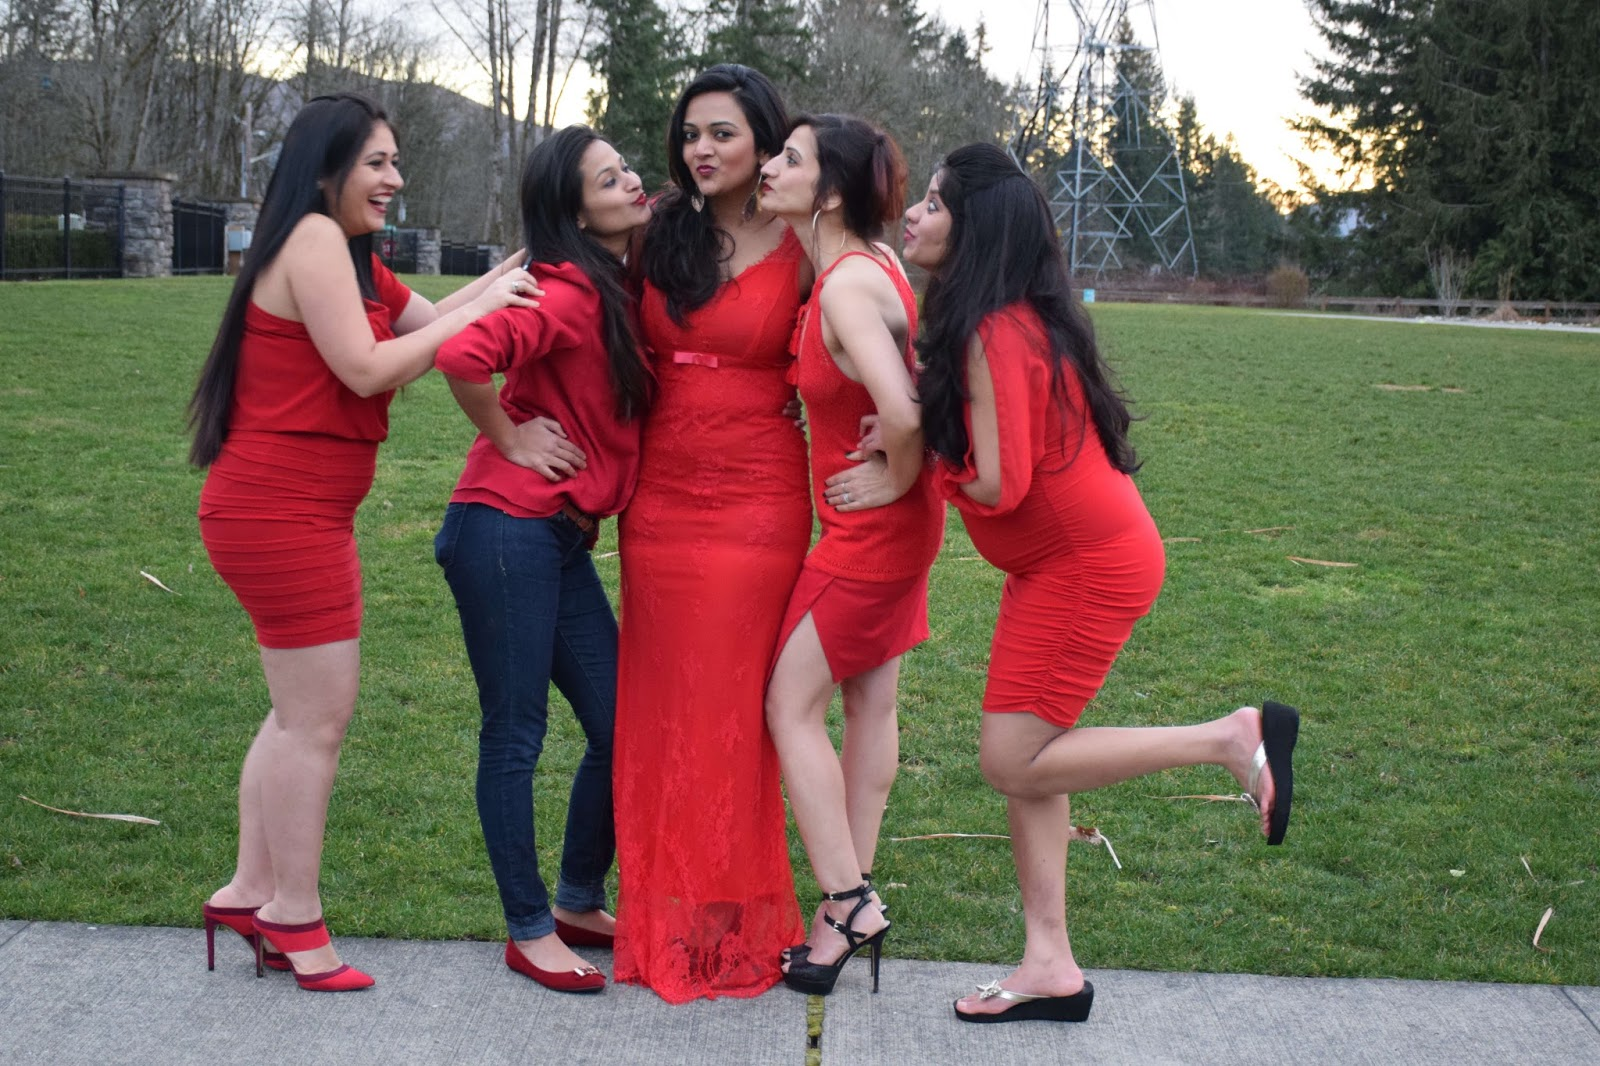 fun shoot with girls, gals all wearing red dress, group pic of indian gals, different types of red dresses, Seattle indian ladies, red lipstick on brown skin